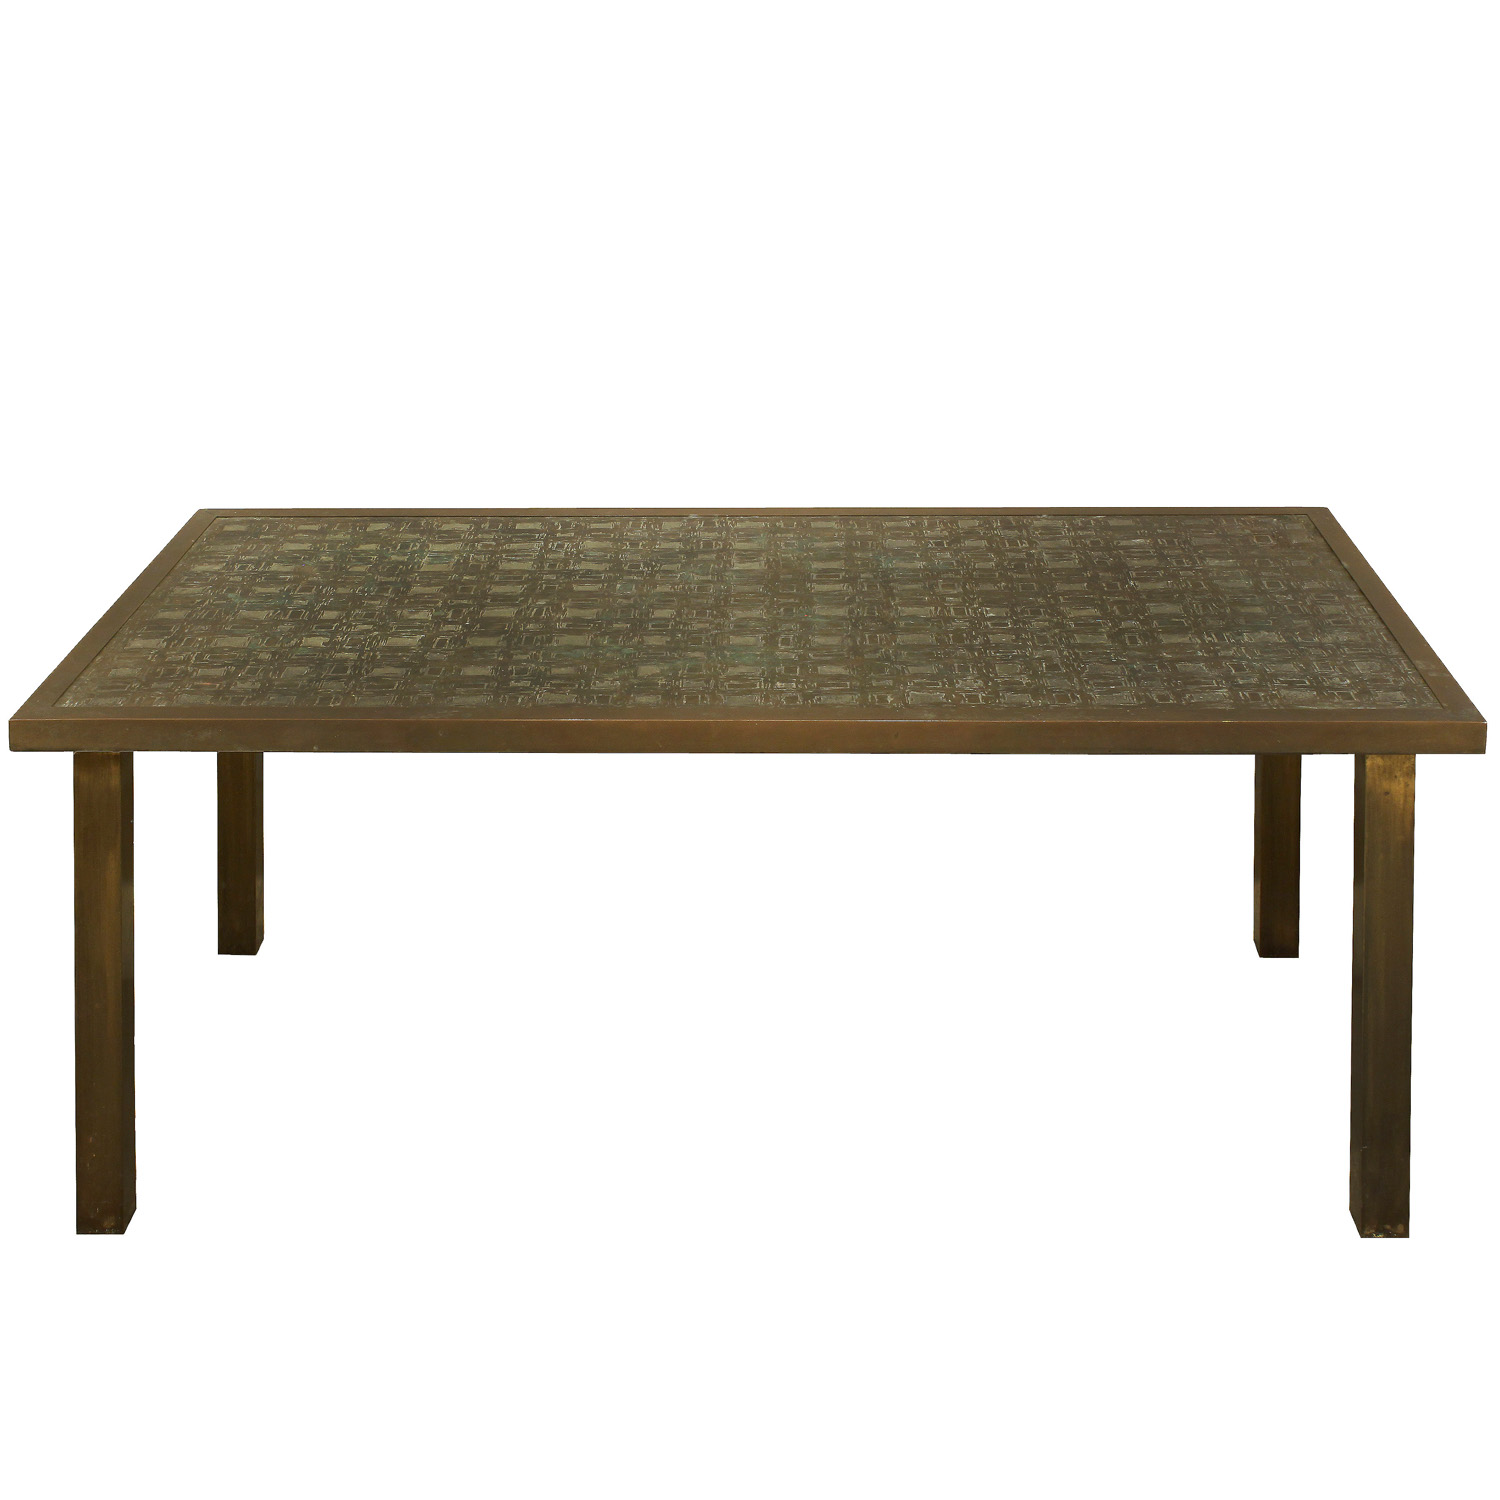 LaVerne 180 Fantasia rect coffeetable406 hires main.jpg